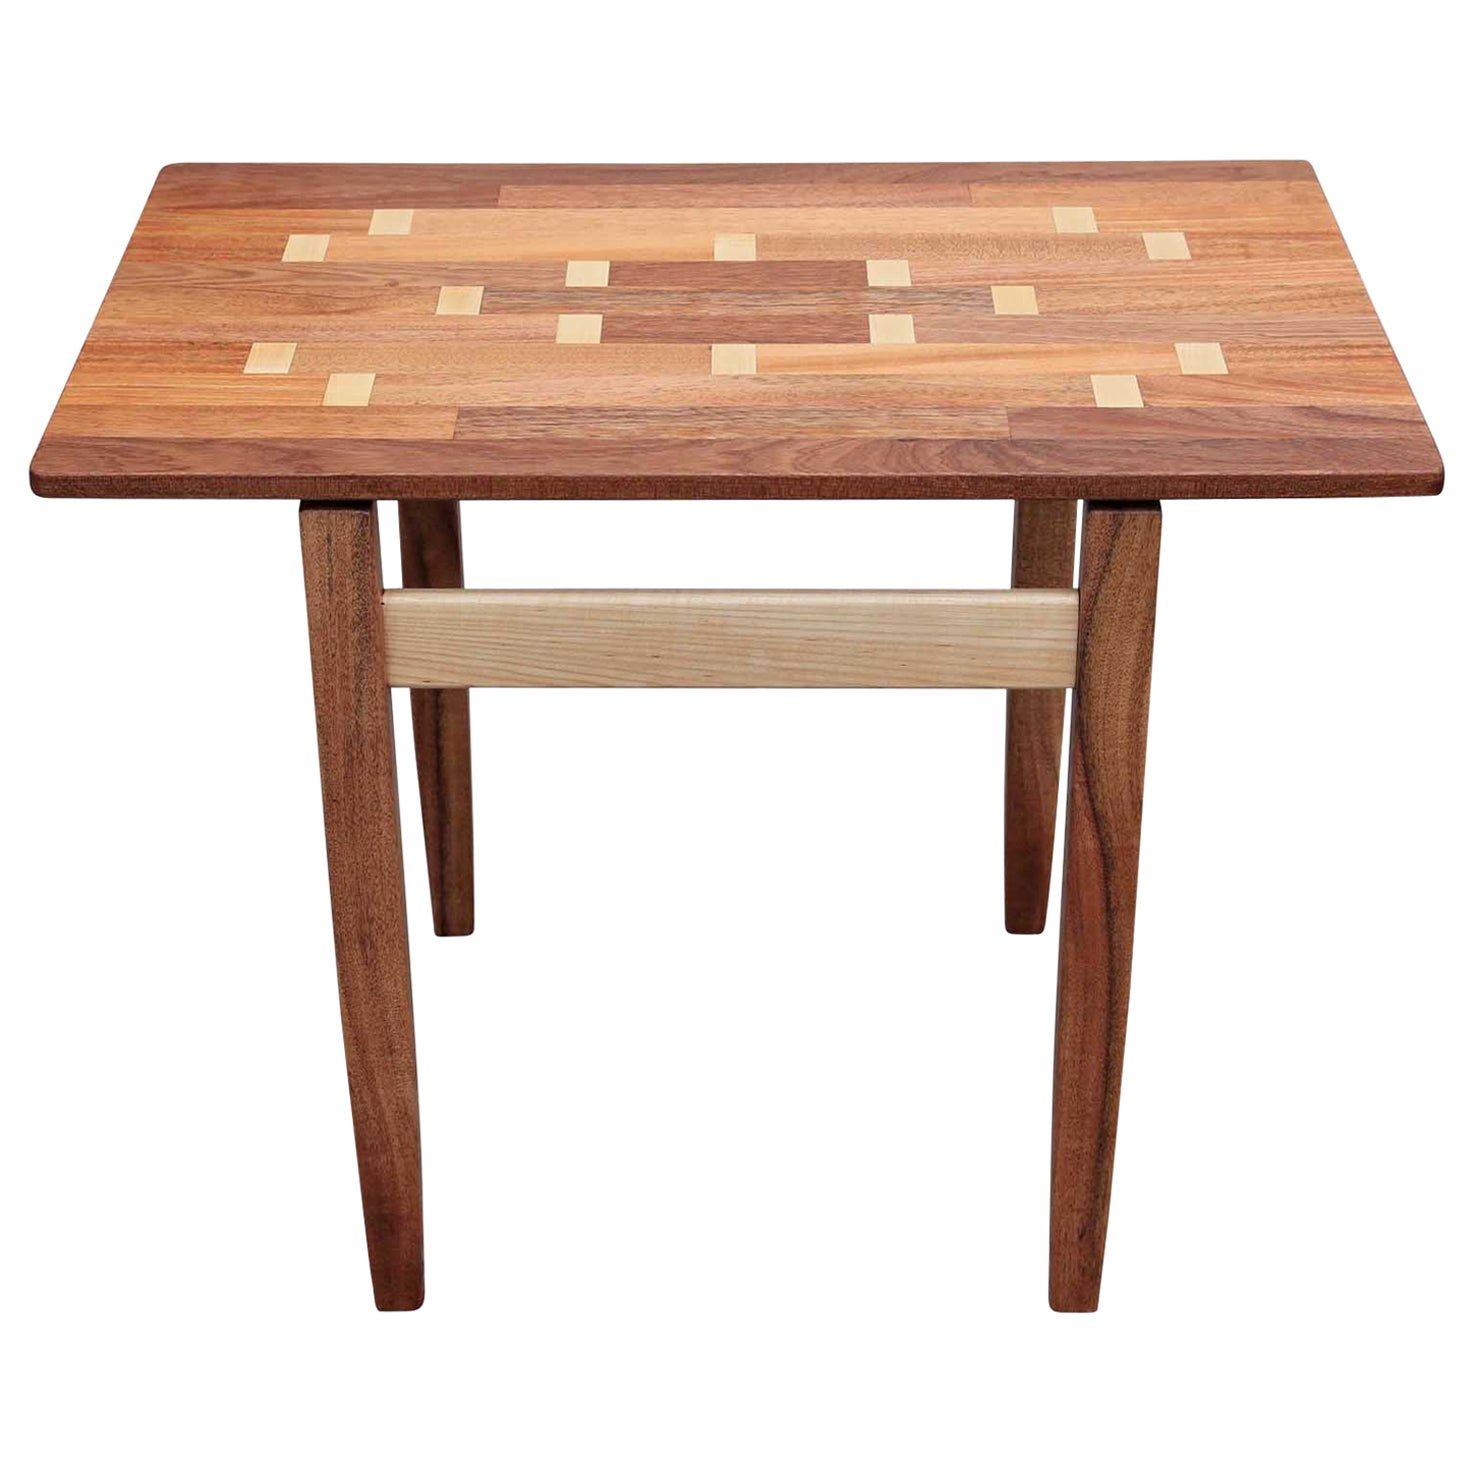 Modern Custom Norm Stoeker Mahogany and Maple Wood inlaid Rectangle Side Table